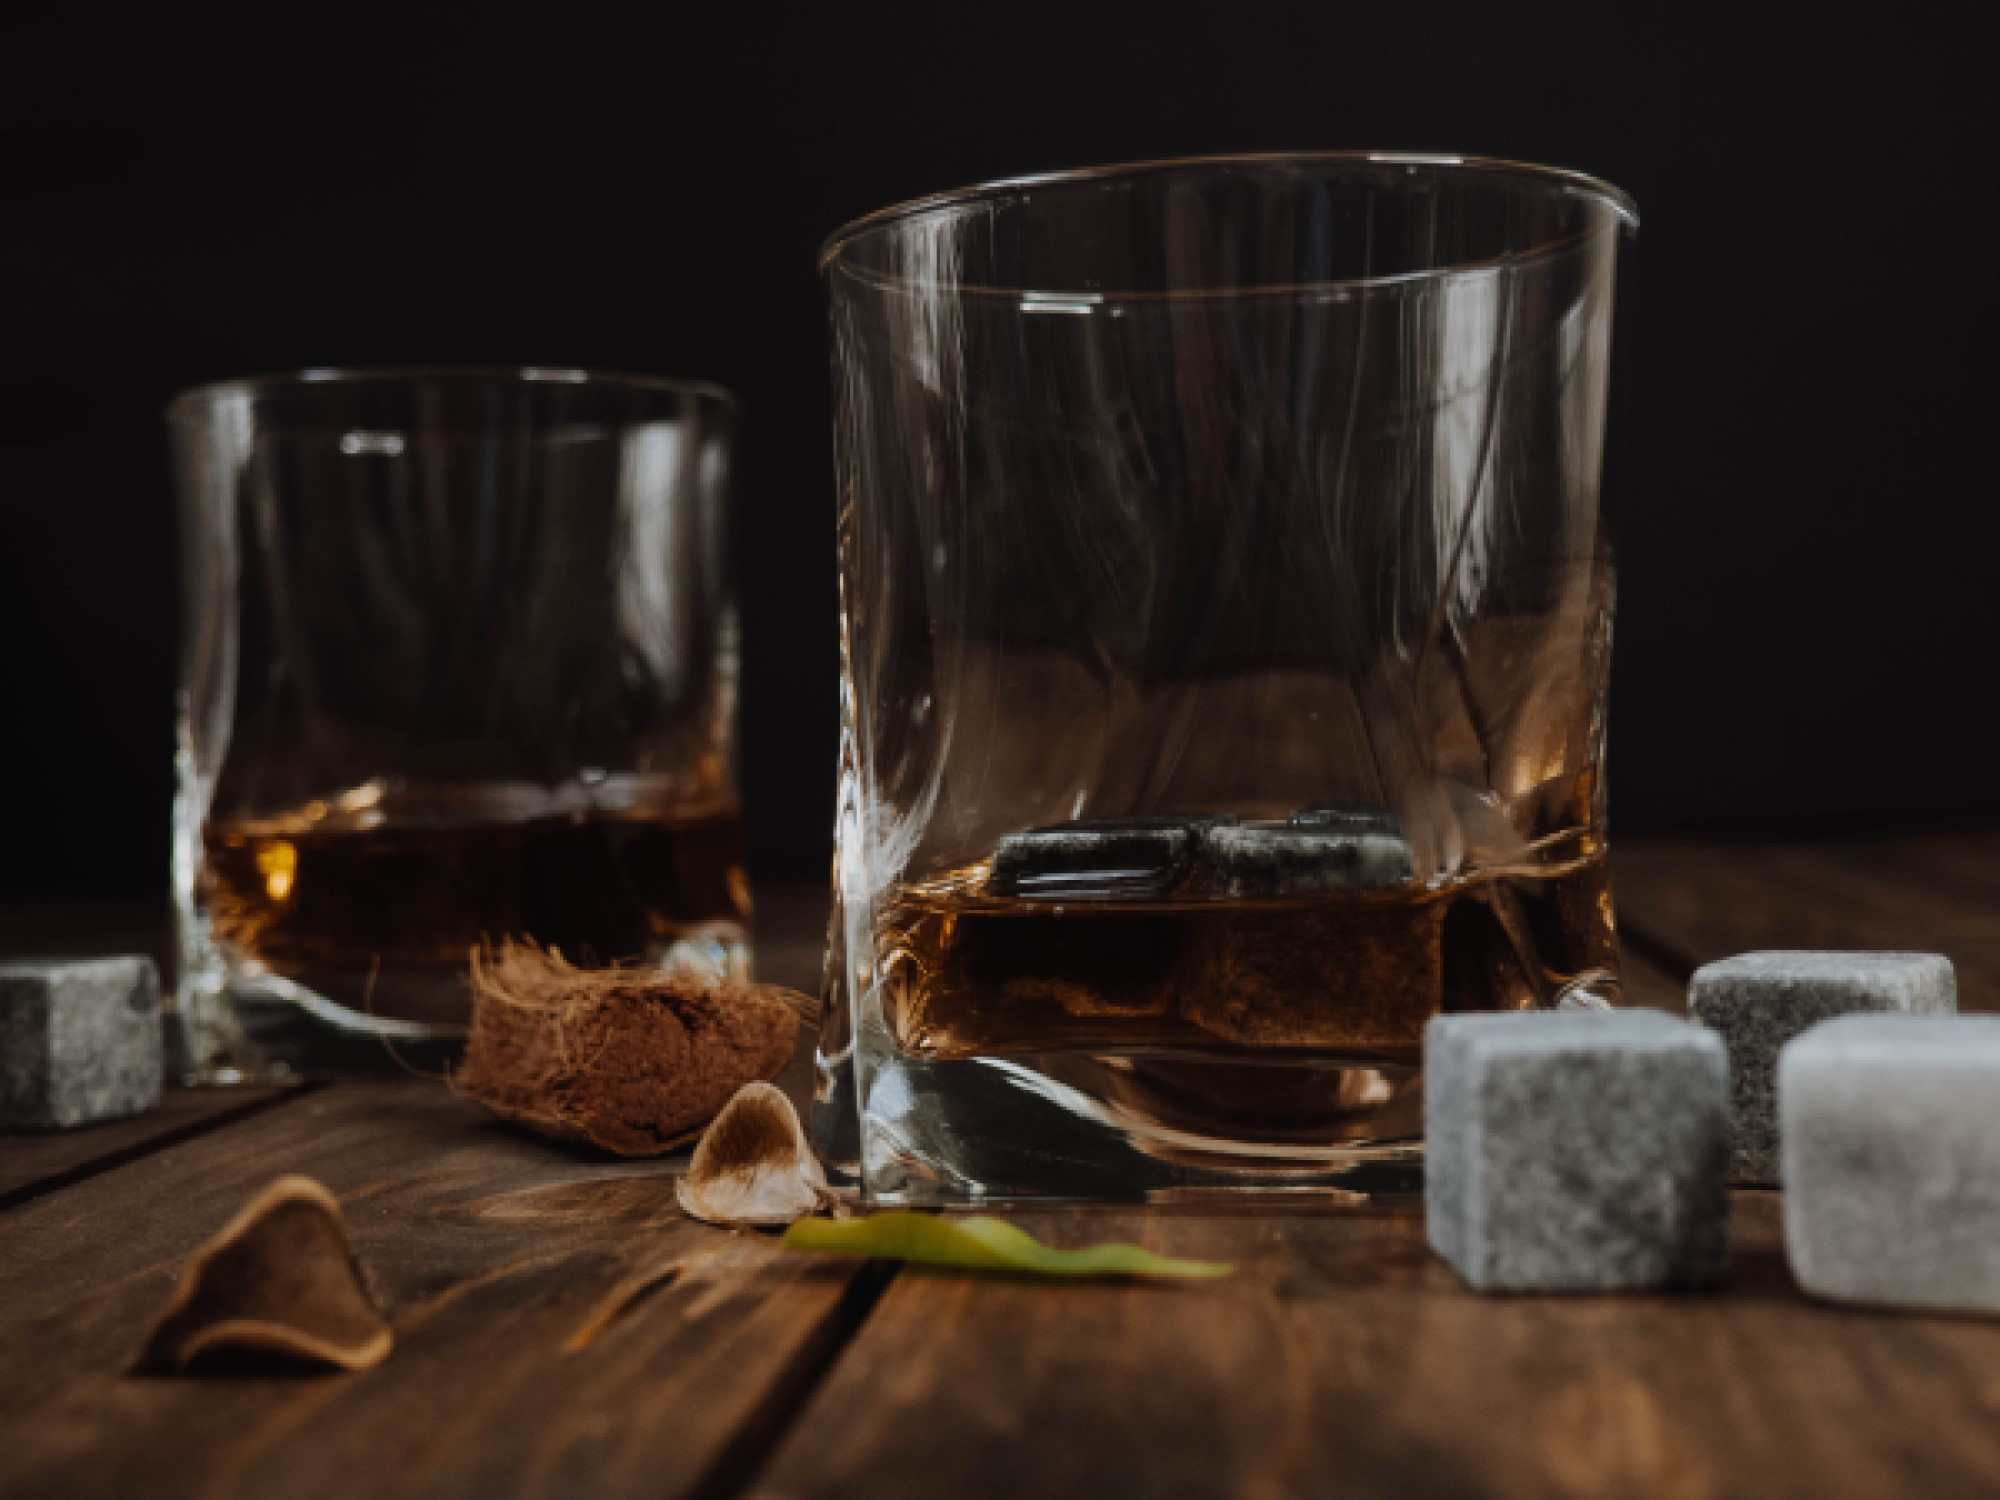 If you're looking for ways to drink fresher whisky without adding water, whisky stones are a great option